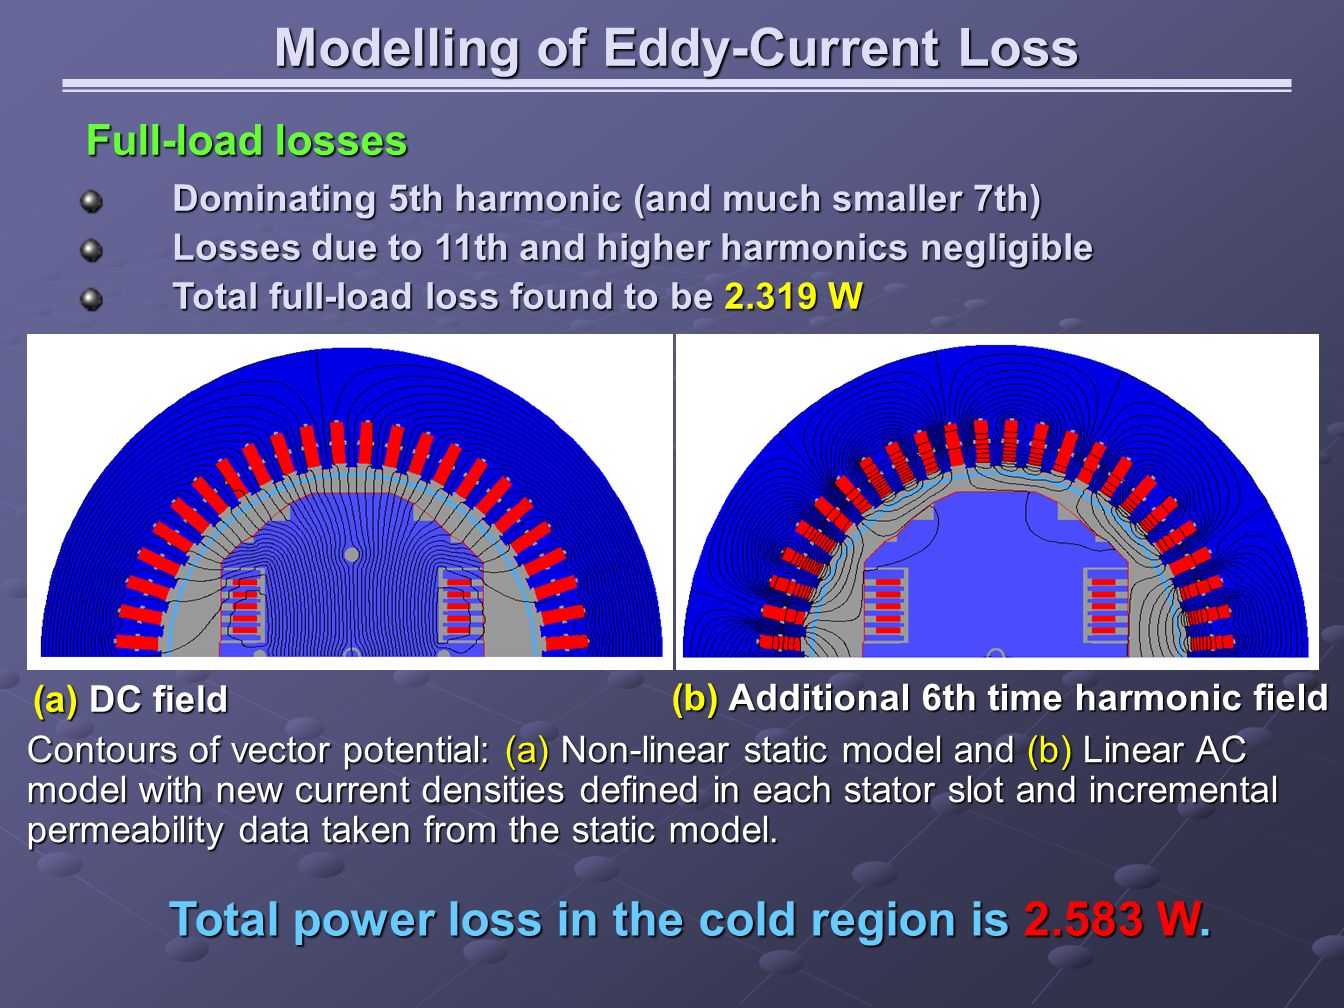 Dominating 5th harmonic (and much smaller 7th) Dominating 5th harmonic (and much smaller 7th) Losses due to 11th and higher harmonics negligible Losse